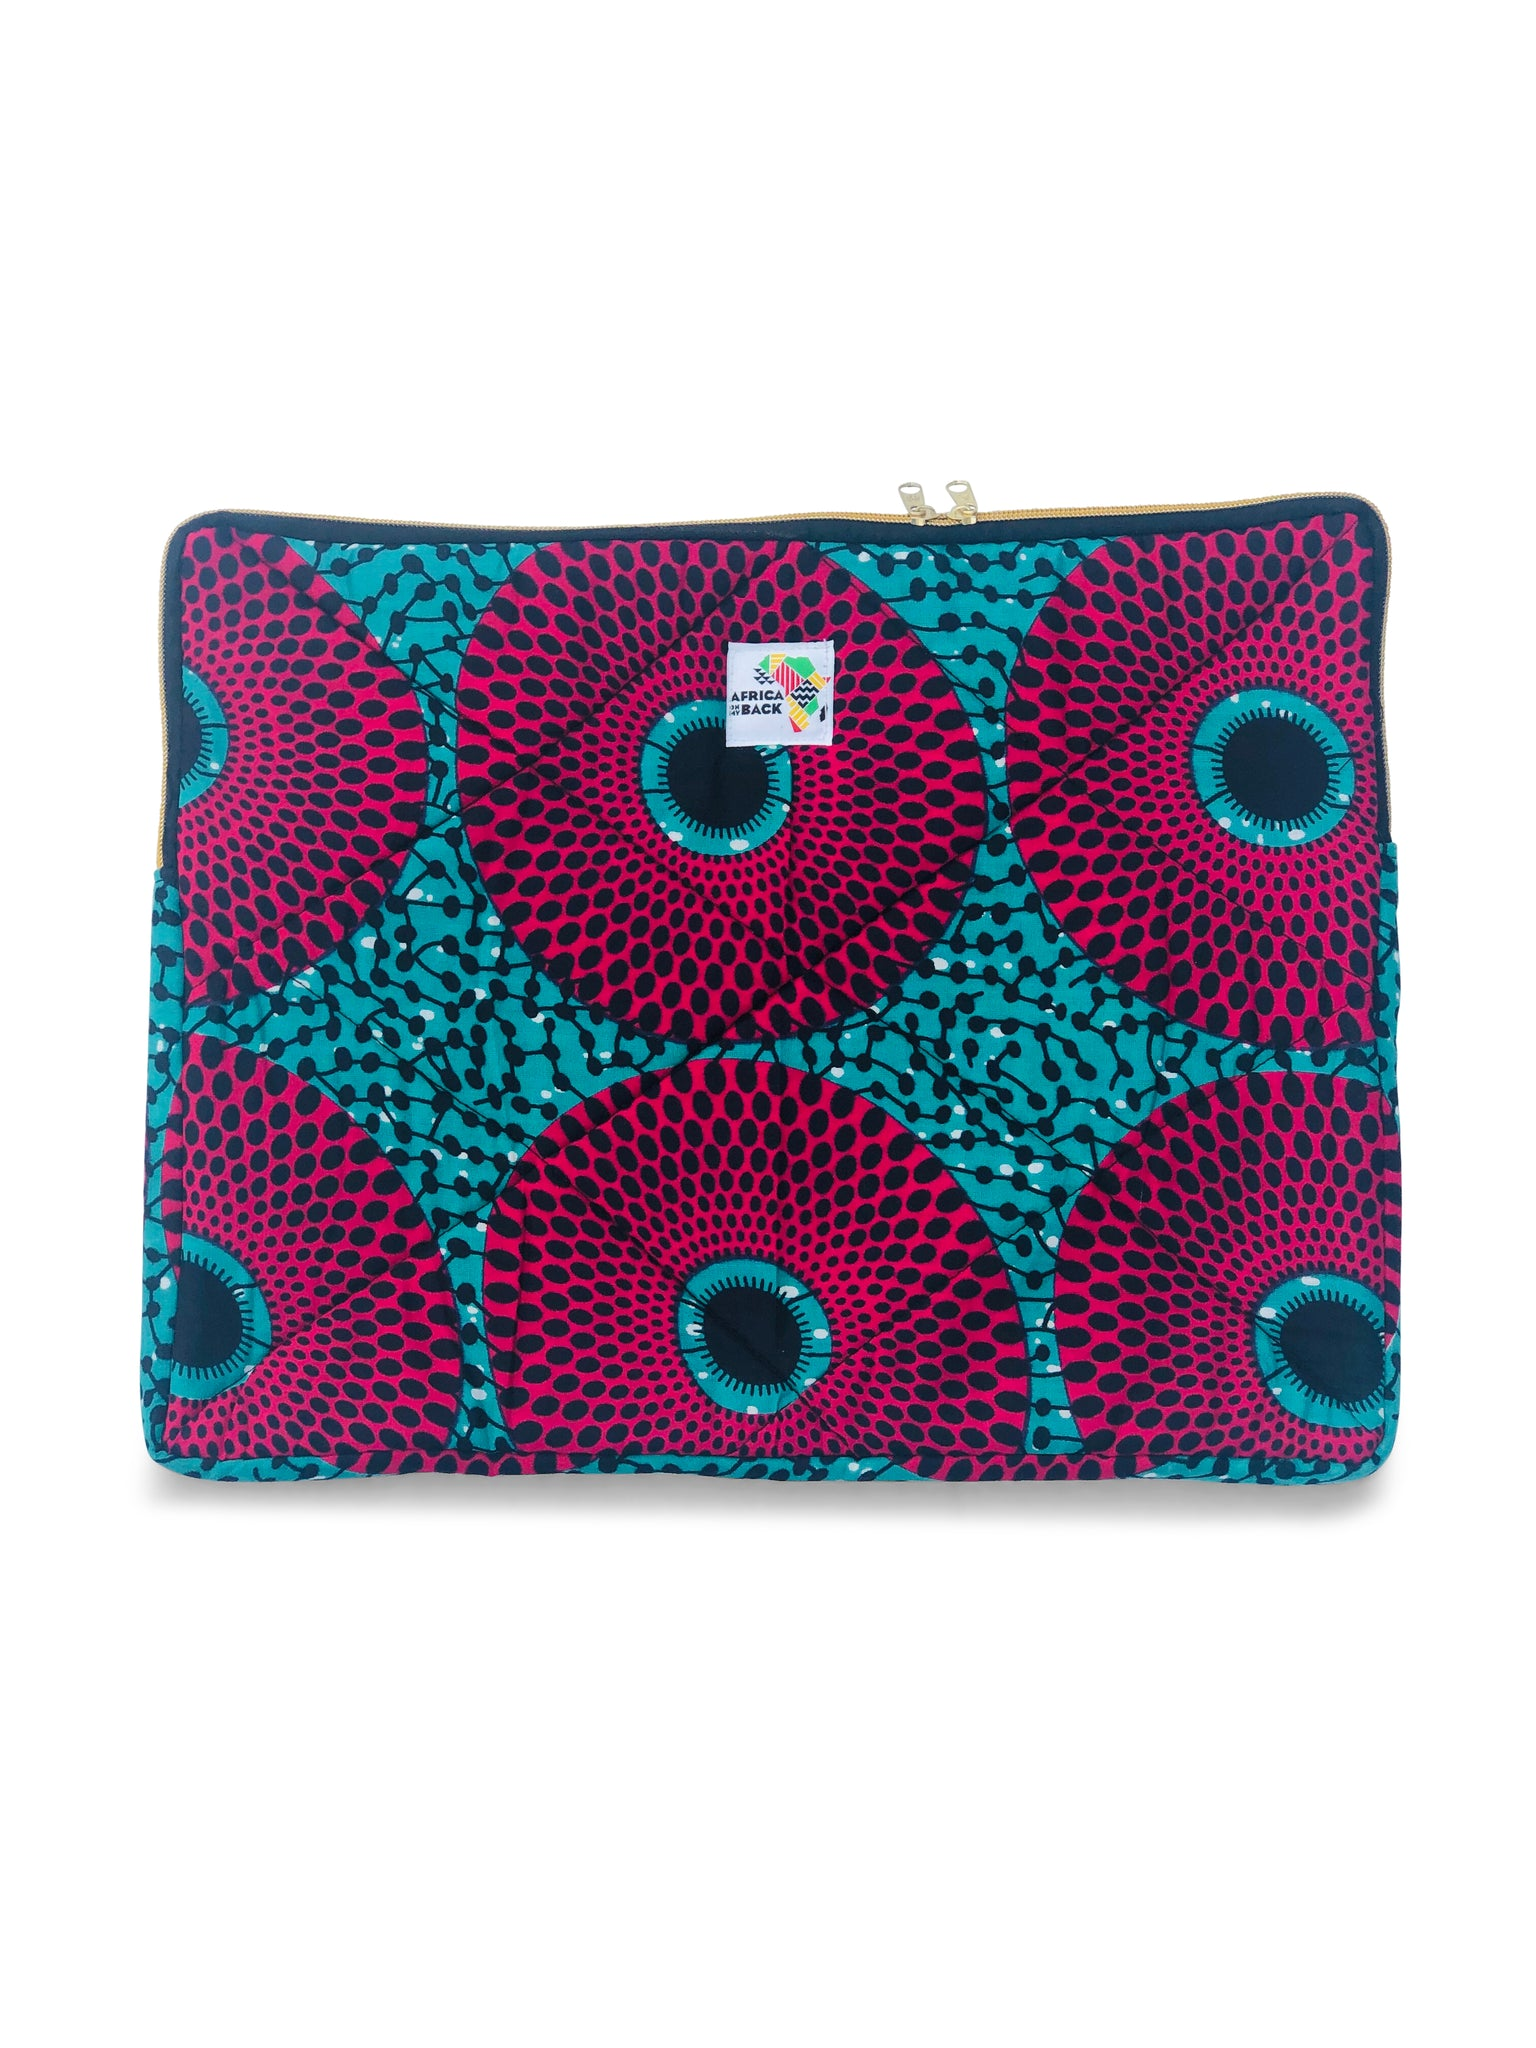 "17"" Game Changer Aqua Fuchsia Laptop Sleeve"